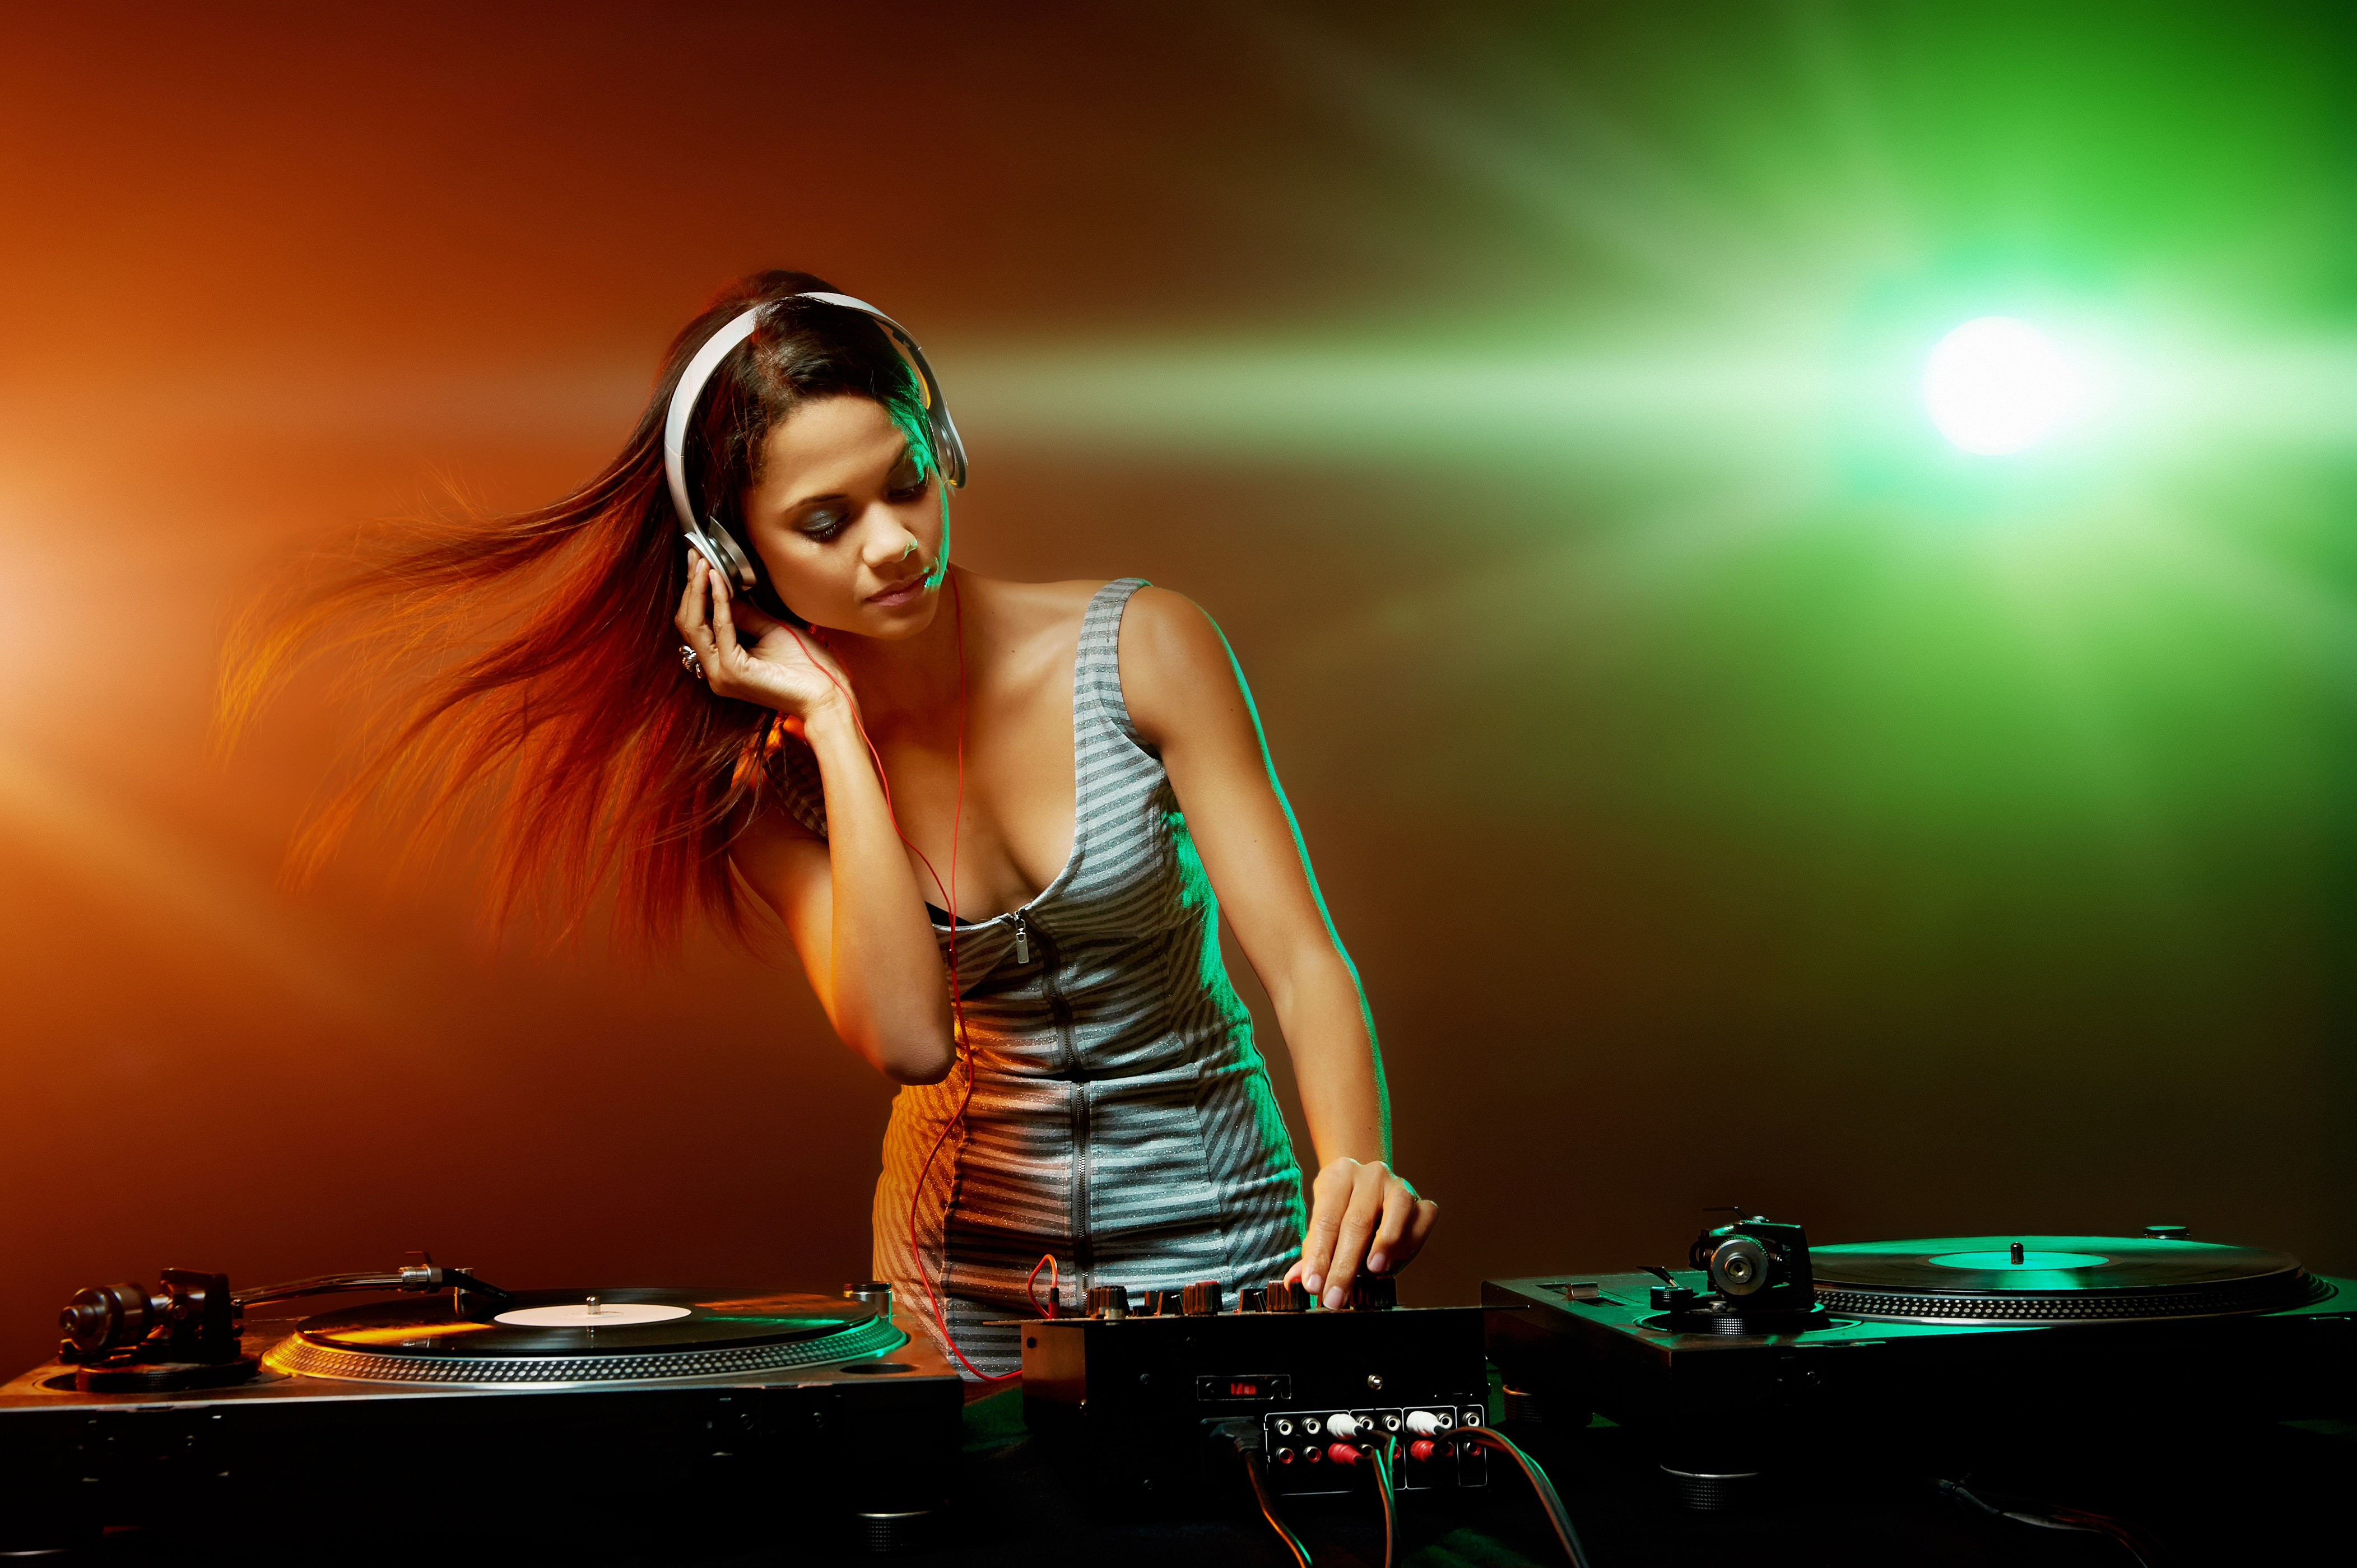 Party Dj Girl, HD Girls, 4k Wallpapers, Images ...